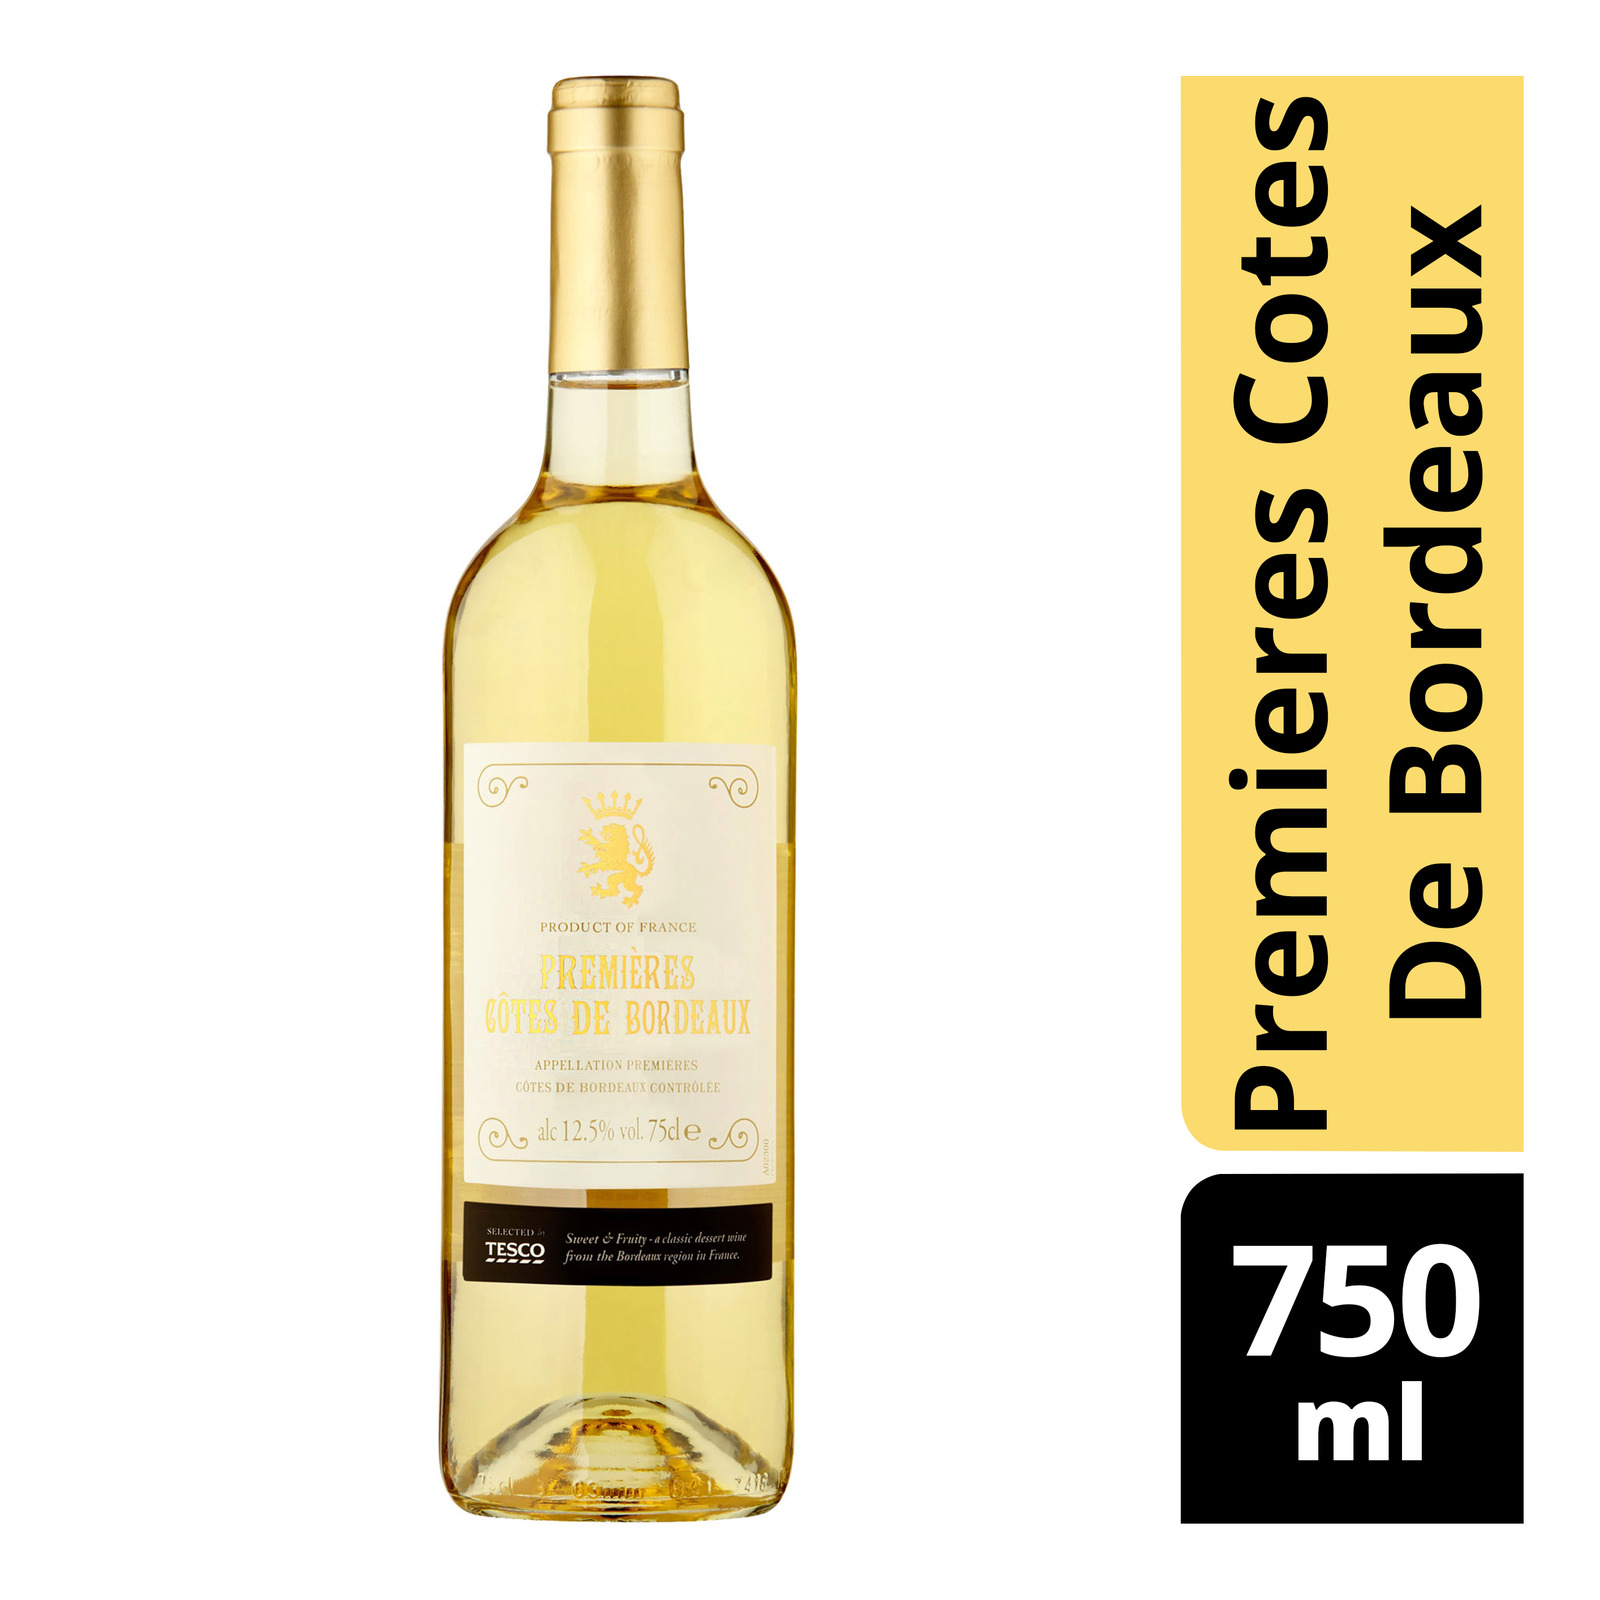 Tesco White Wine - Premieres Cotes De Bordeaux